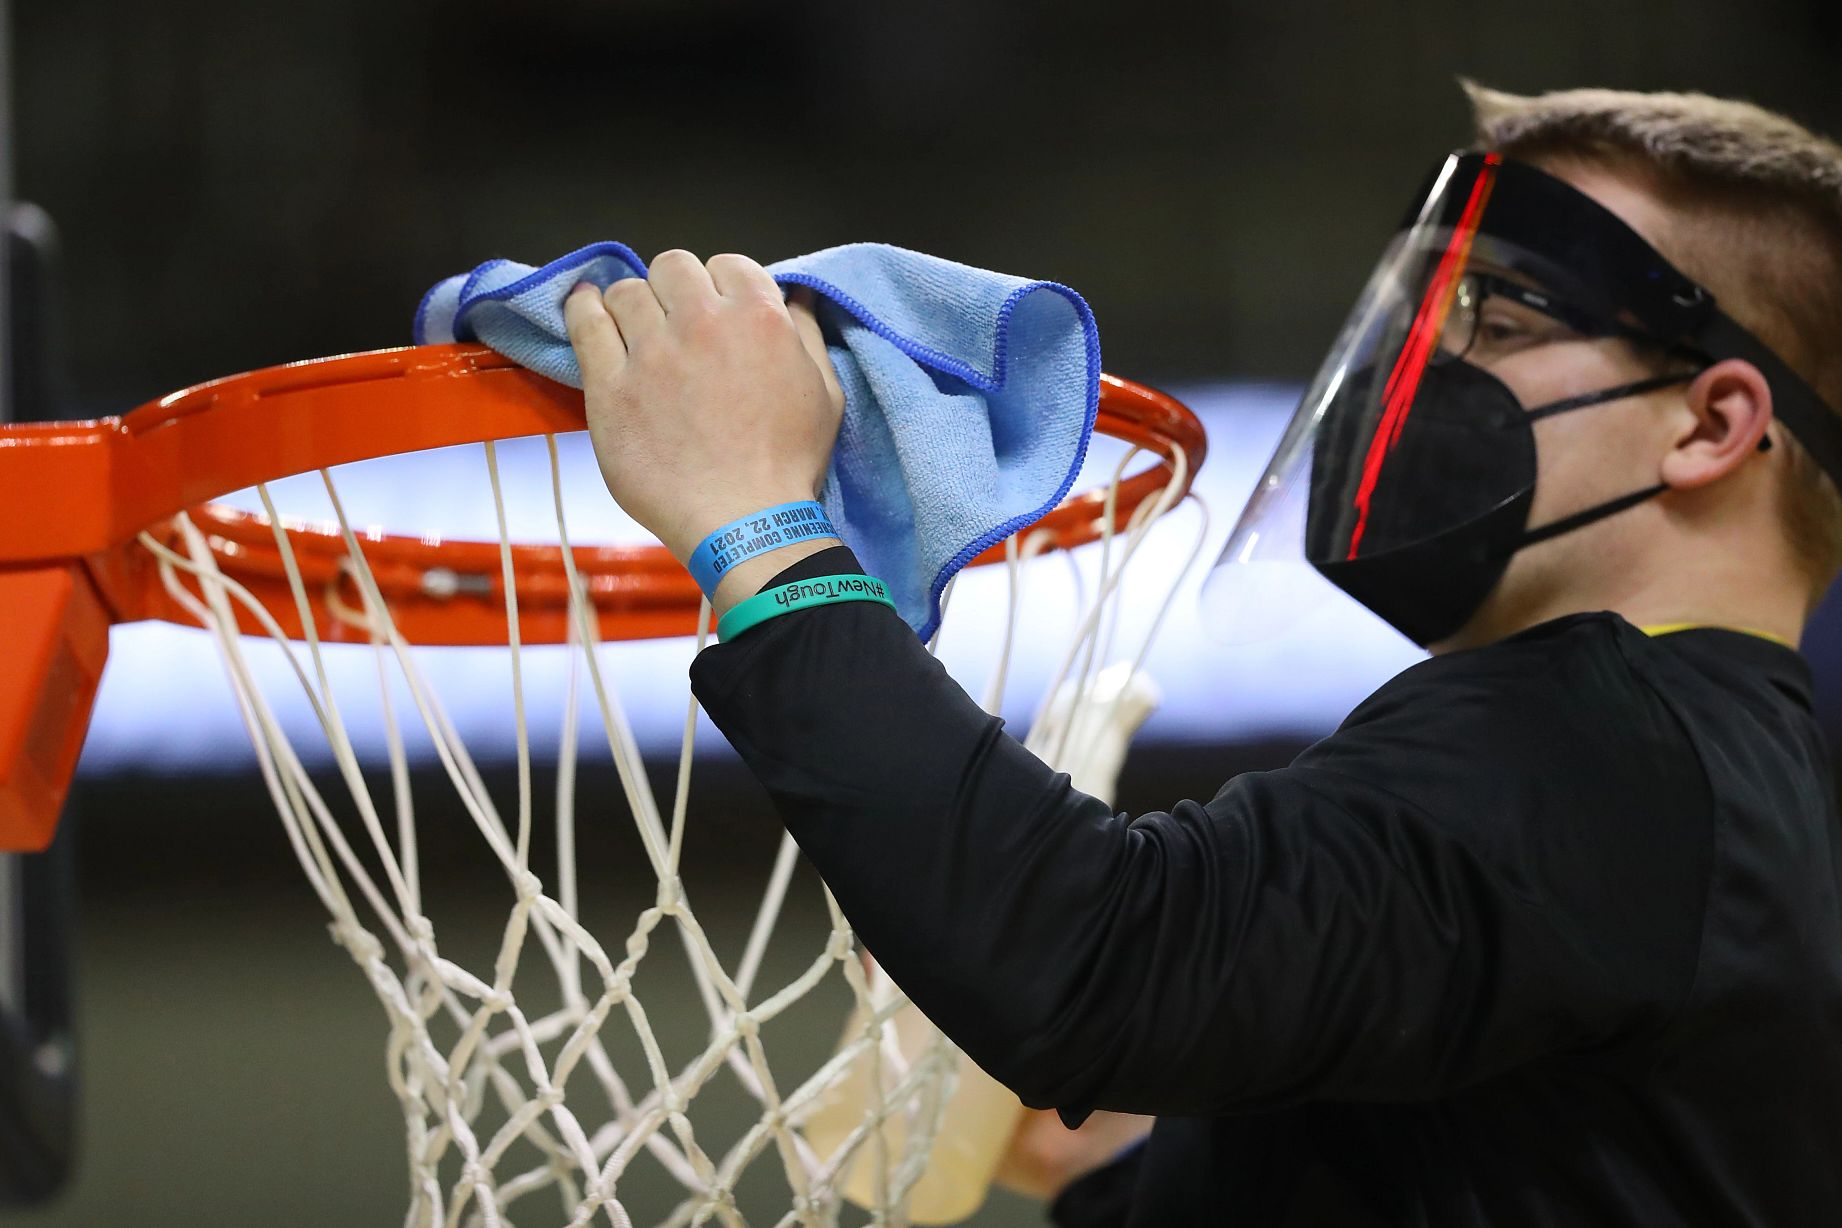 man wearing a mask and face shield wipes cleans a basketball rim